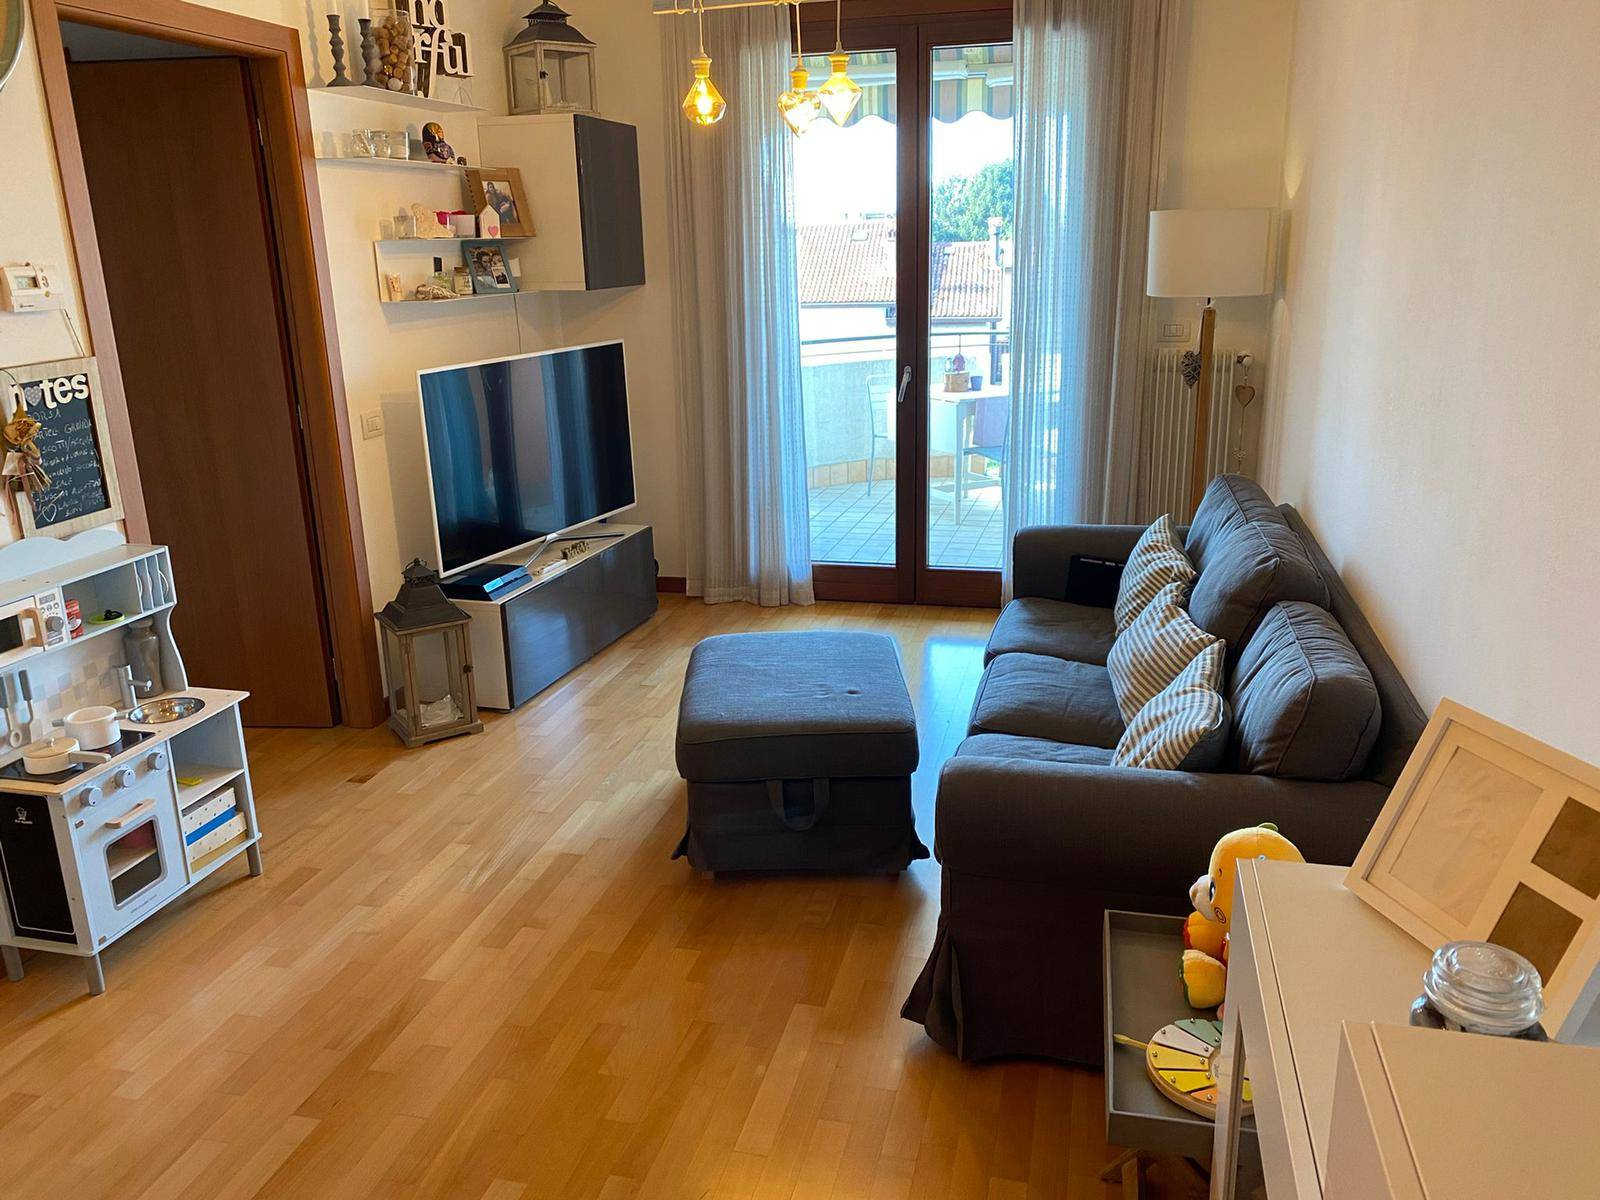 MAZZINI, SALZANO, Apartment for sale of 51 Sq. mt., Excellent Condition, Heating Individual heating system, placed at 2° on 2, composed by: 3 Rooms,